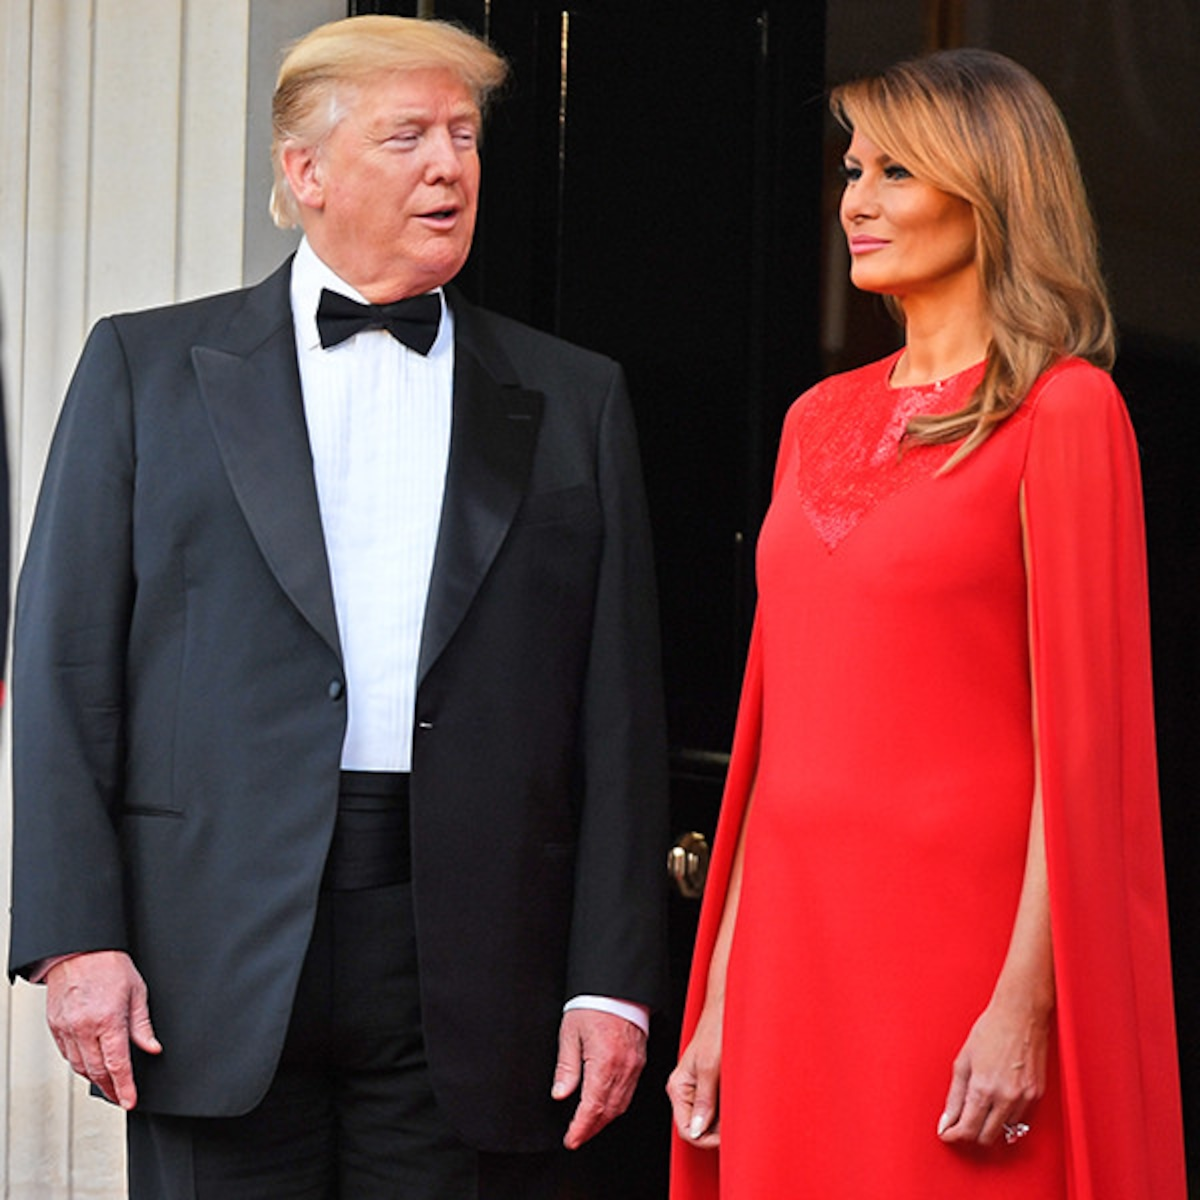 How Donald Trump Met Melania An Unusual Road To Being First Couple E Online Au